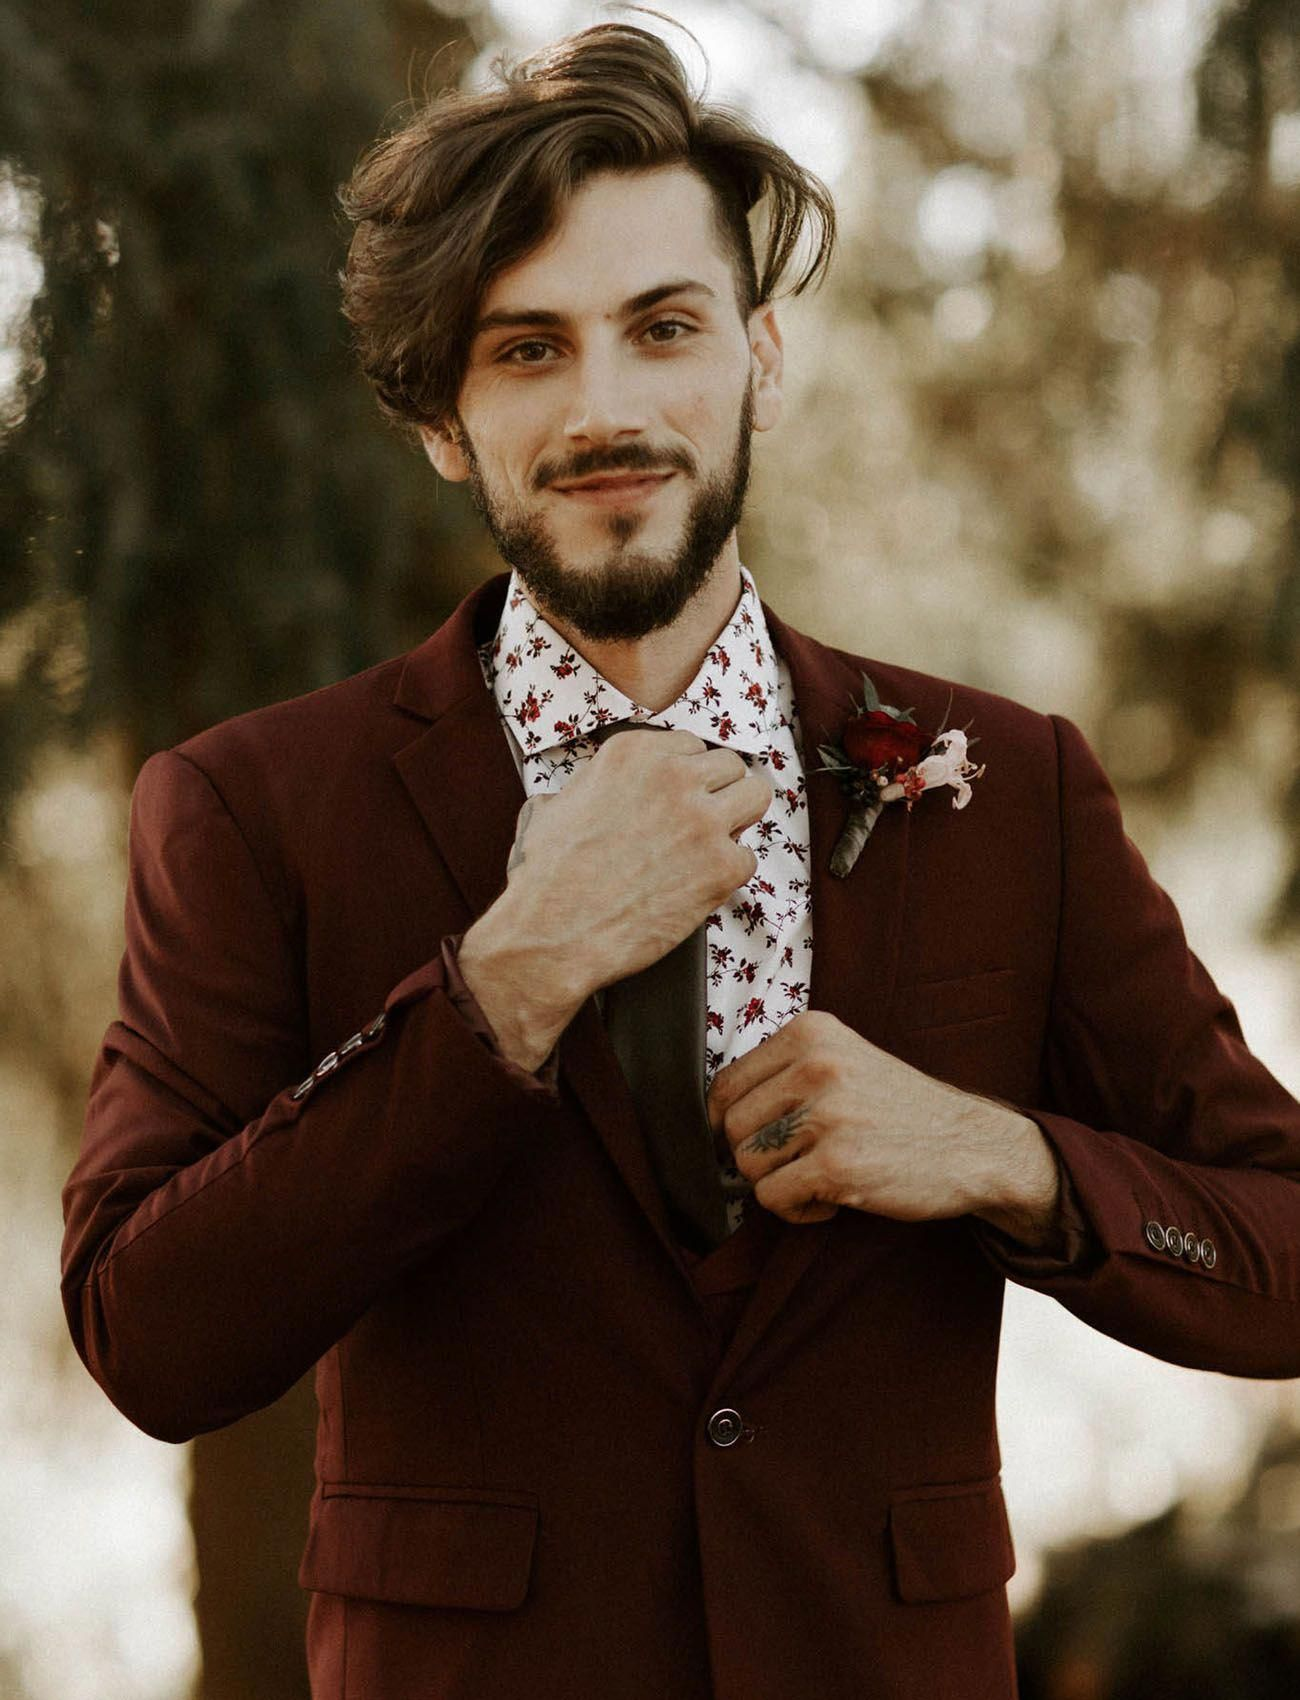 Moody edgy red burgundy grooms suit MensFashionEdgy